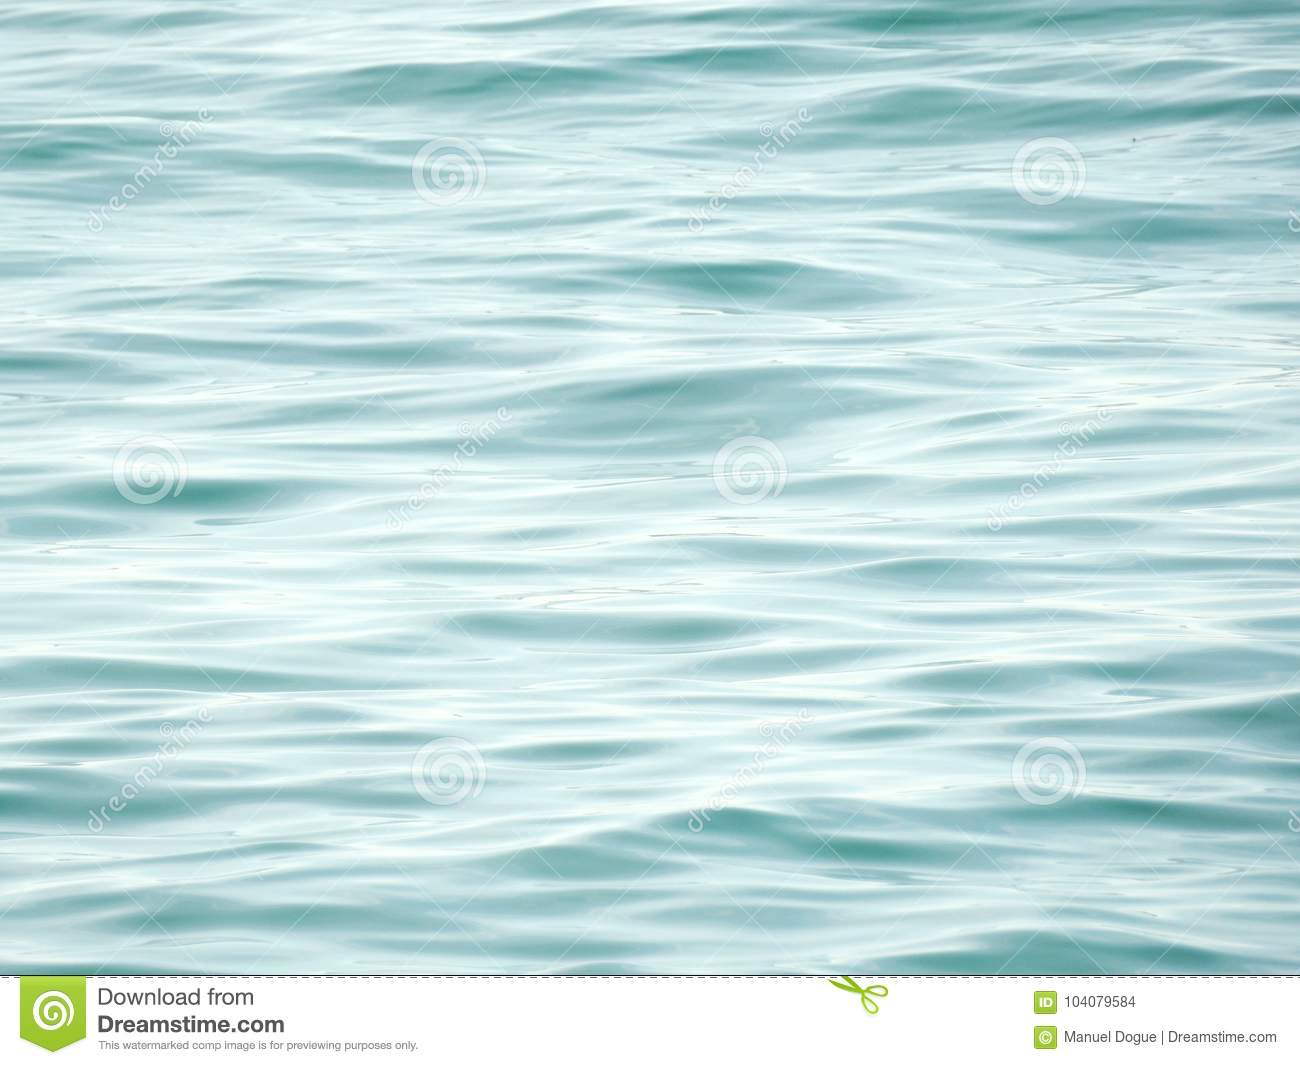 Ocean waves. Clean water background, calm waves.